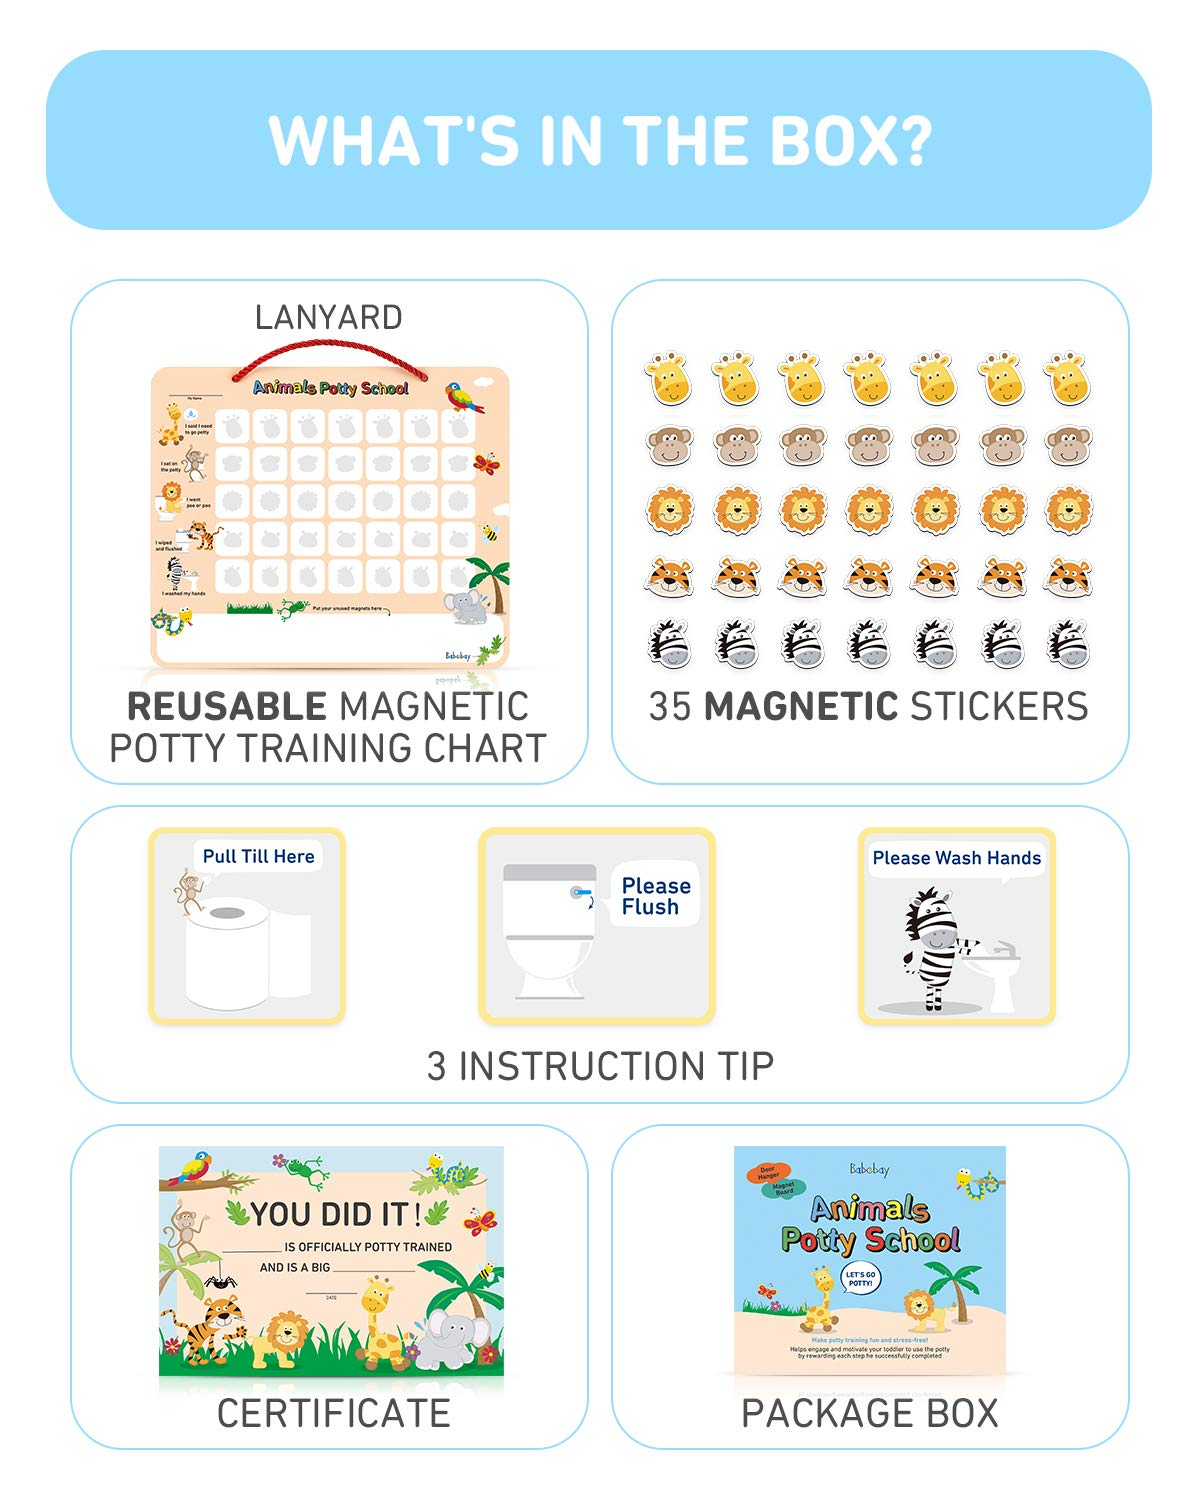 Potty Training Chart for Toddlers - Fun Animal Design